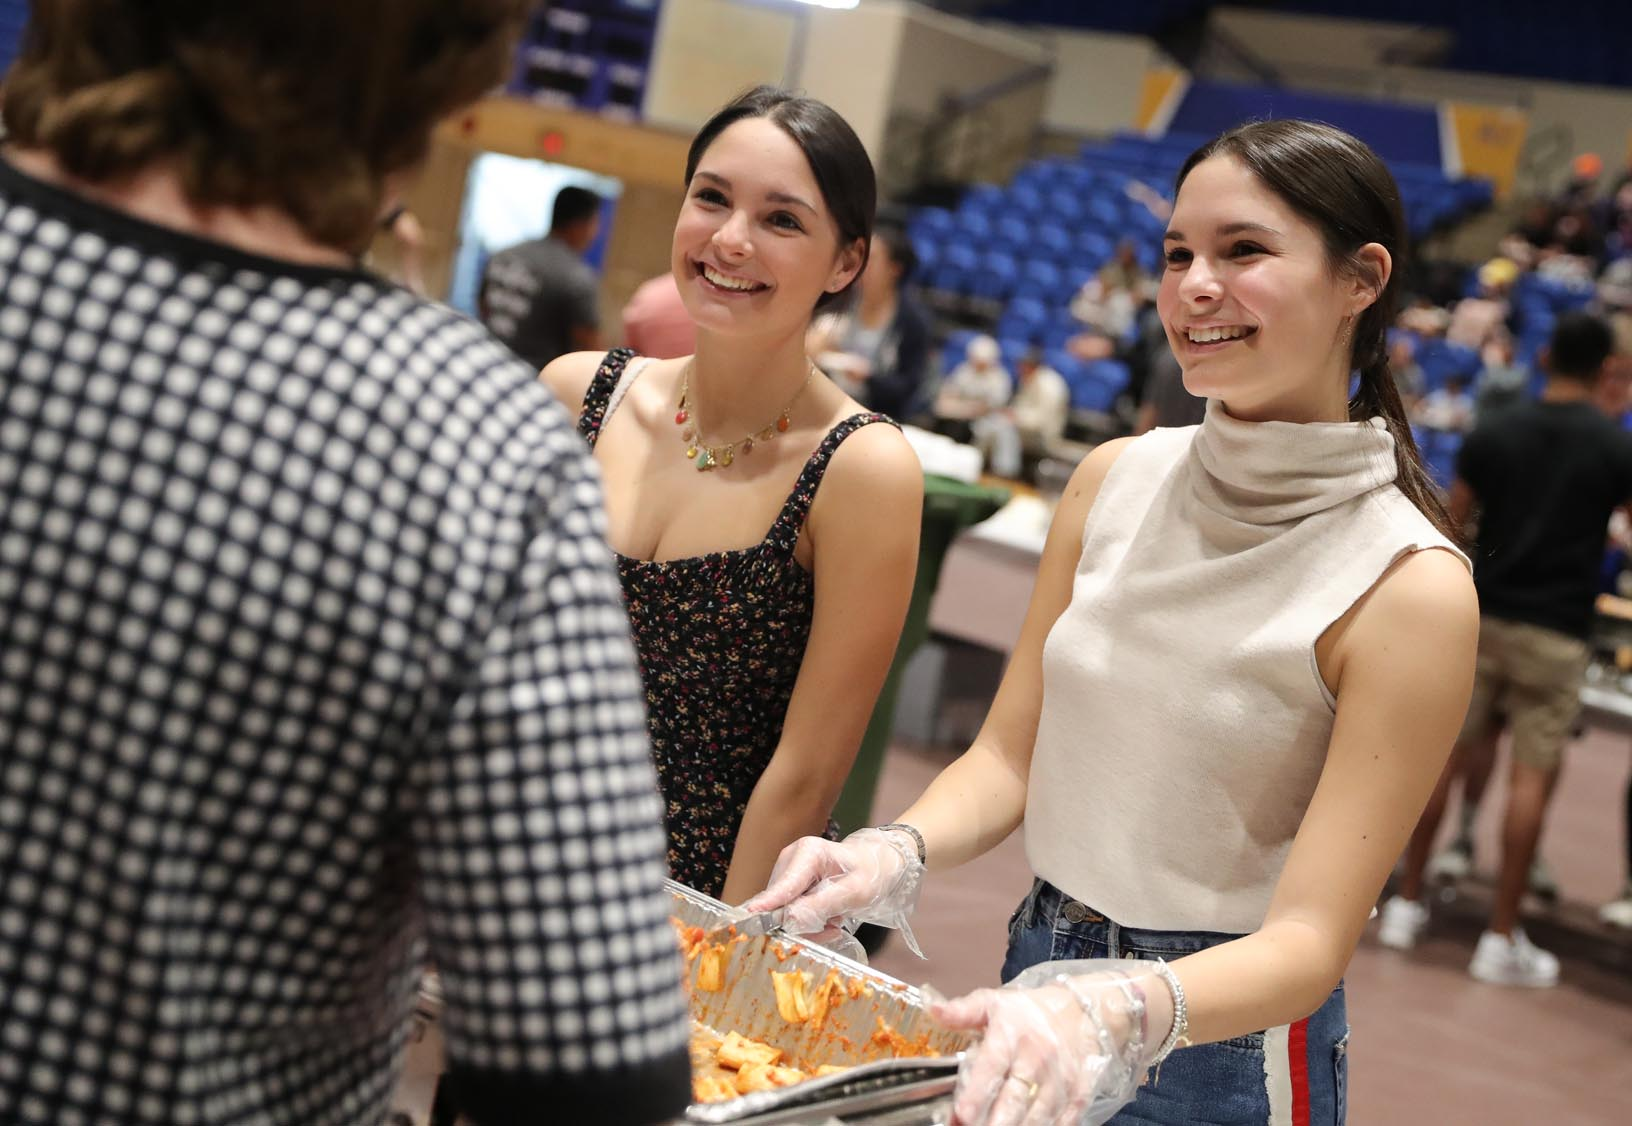 Twin sisters Sara, left, and Martina Mangiacavalli of Italy chat with guests while serving a baked pasta dish during Sunday's Scott D. Morris International Food and Cultural Festival.